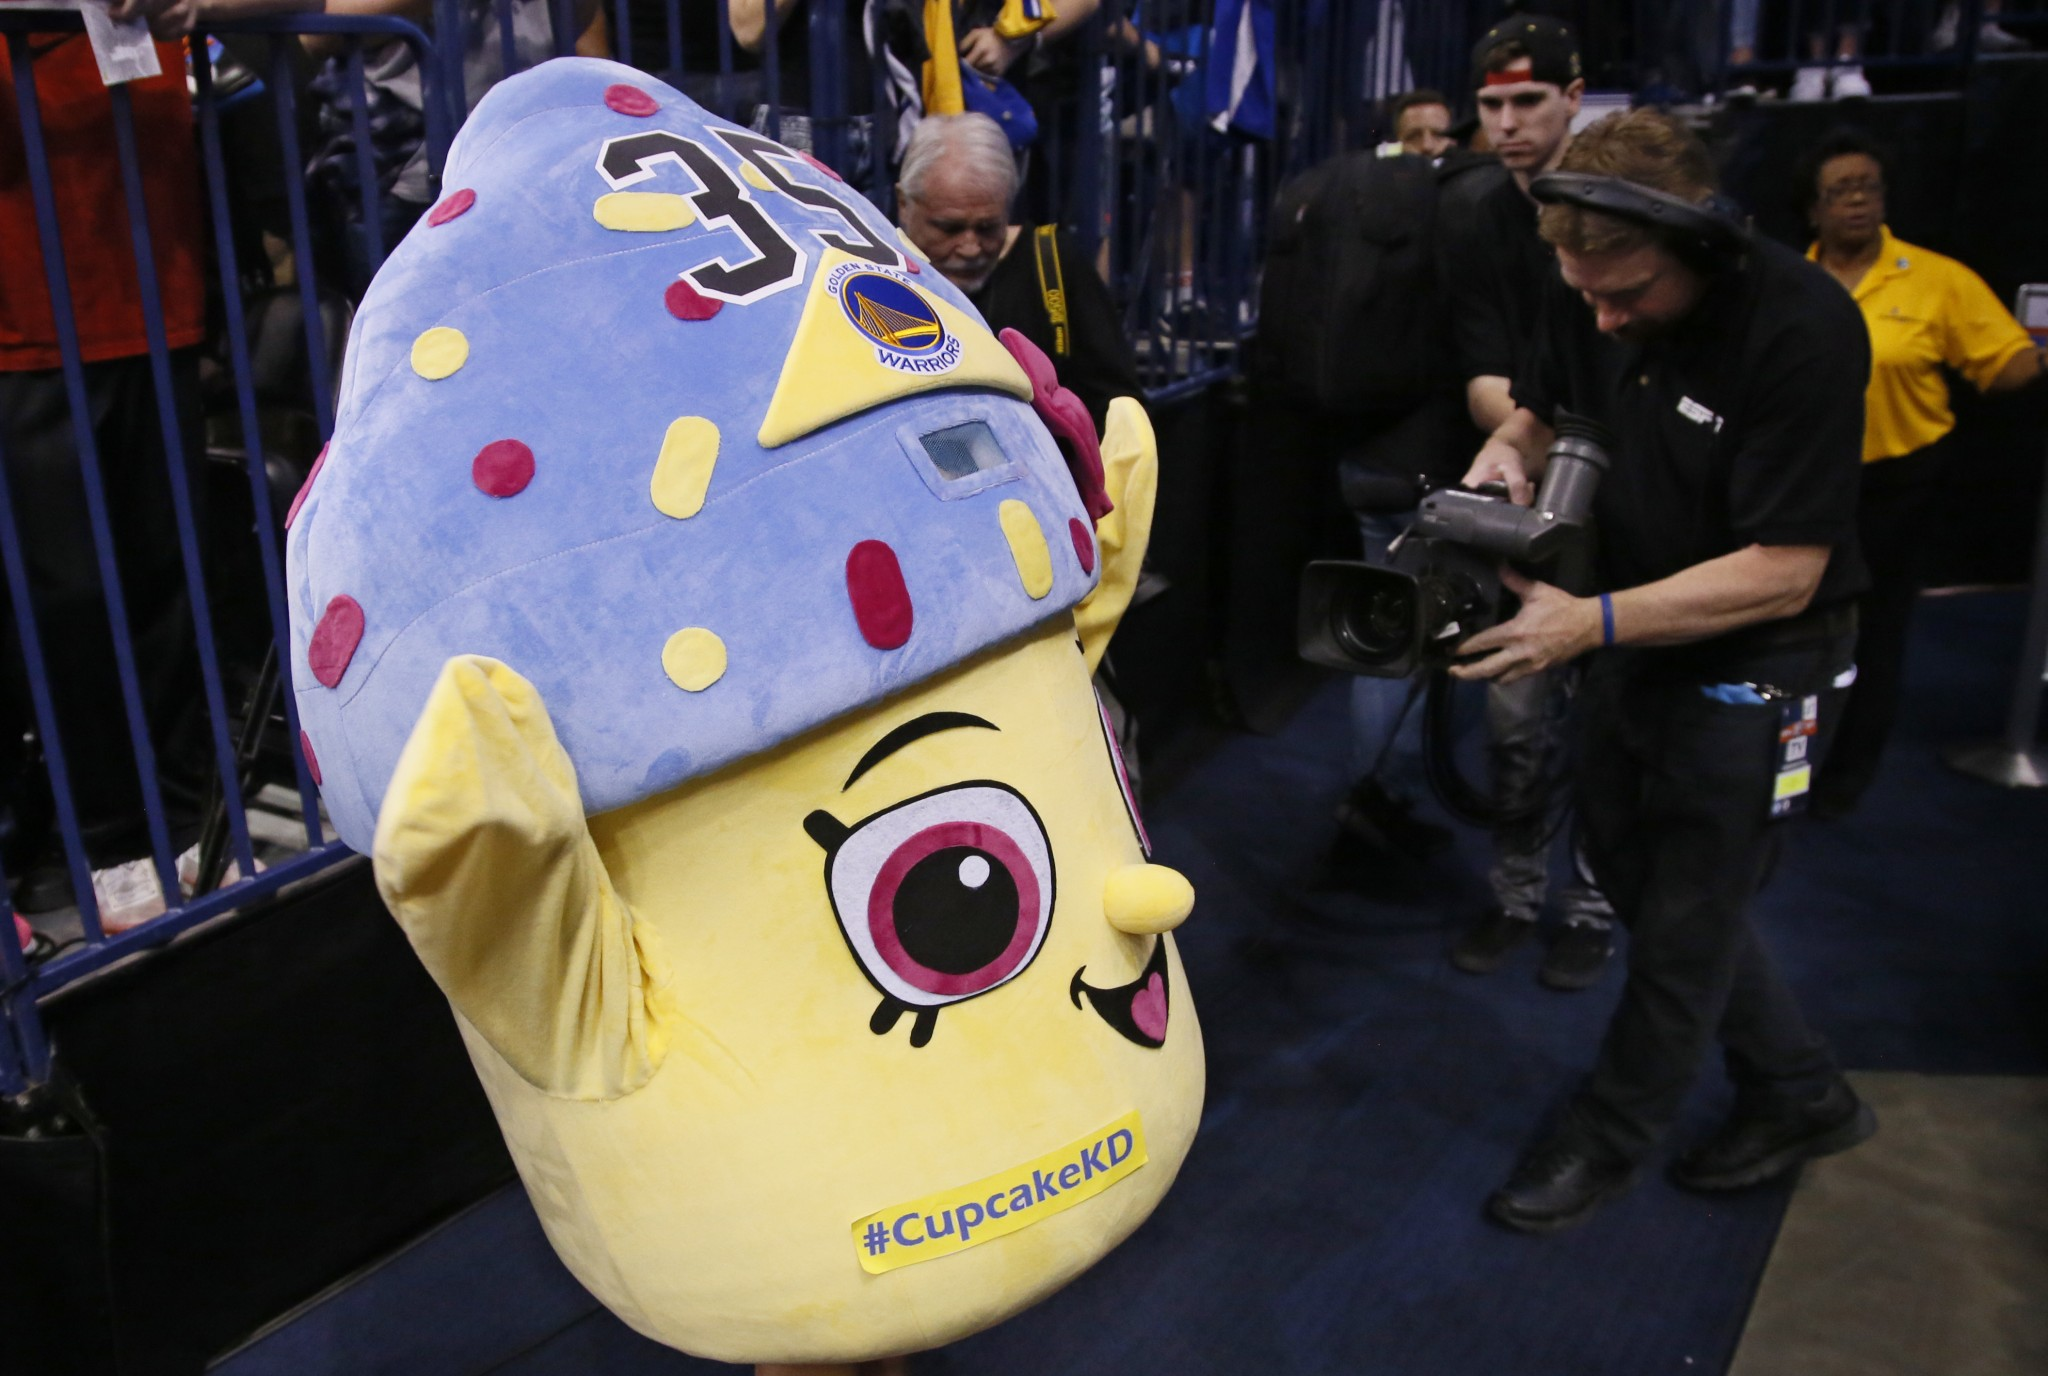 A young Thunder fan wears a cupcake costume before an NBA basketball game between the Golden State Warriors and the Oklahoma City Thunder in Oklahoma City, Saturday, Feb. 11, 2017. (AP/Sue Ogrocki)